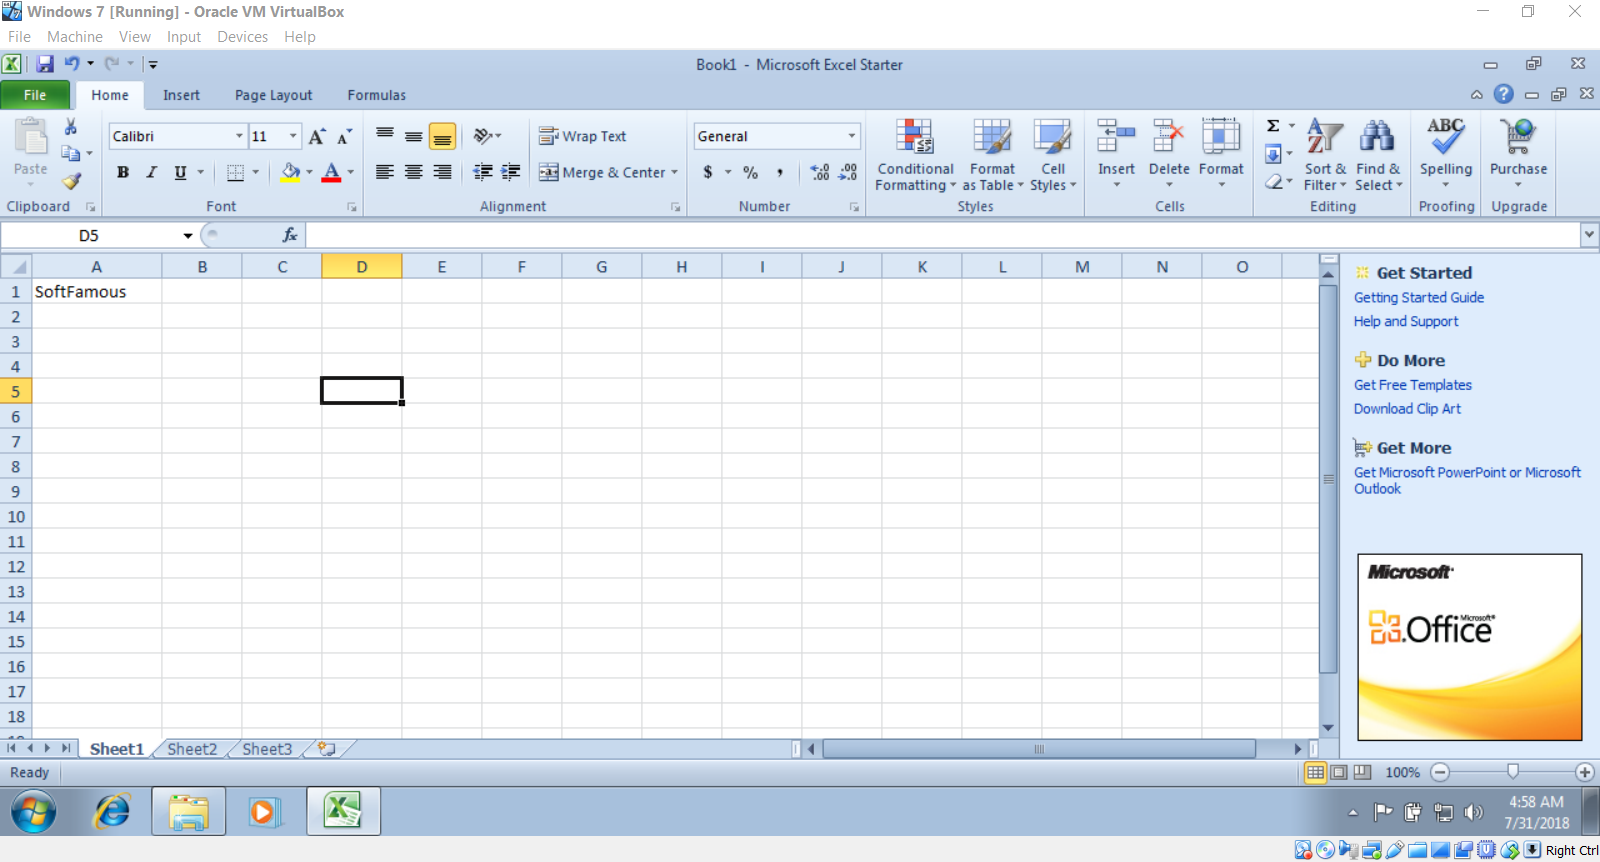 microsoft excel for windows 7 32 bit free download